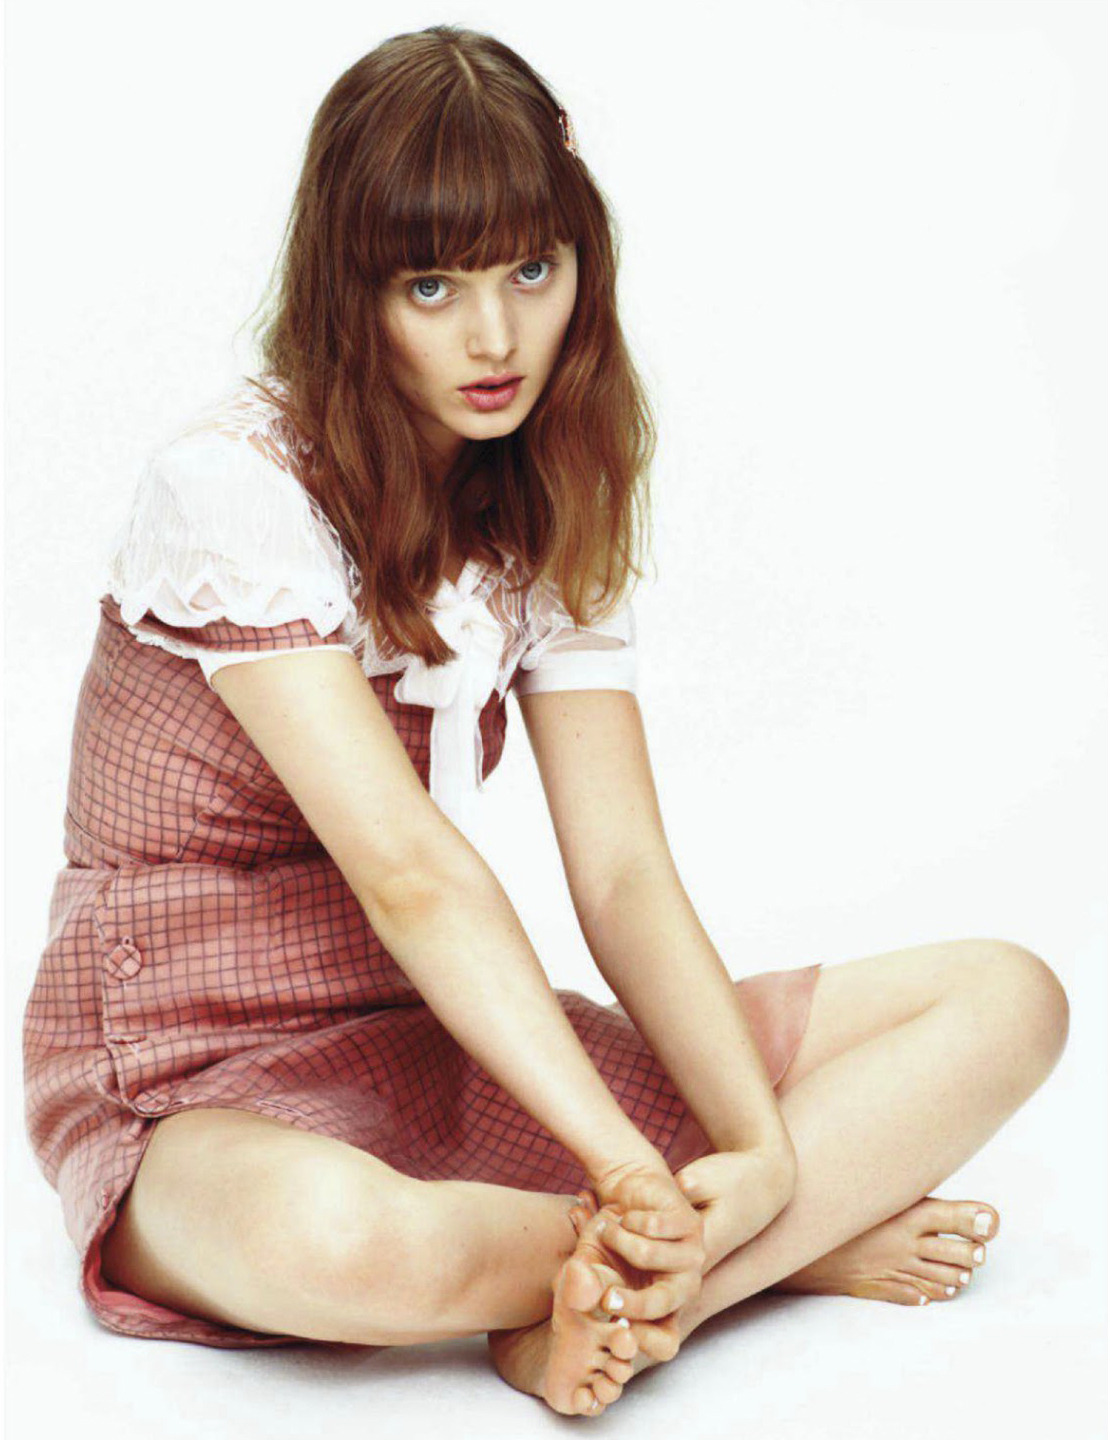 Bella Heathcote photographed by Alexei Hay for Elle, January 2013